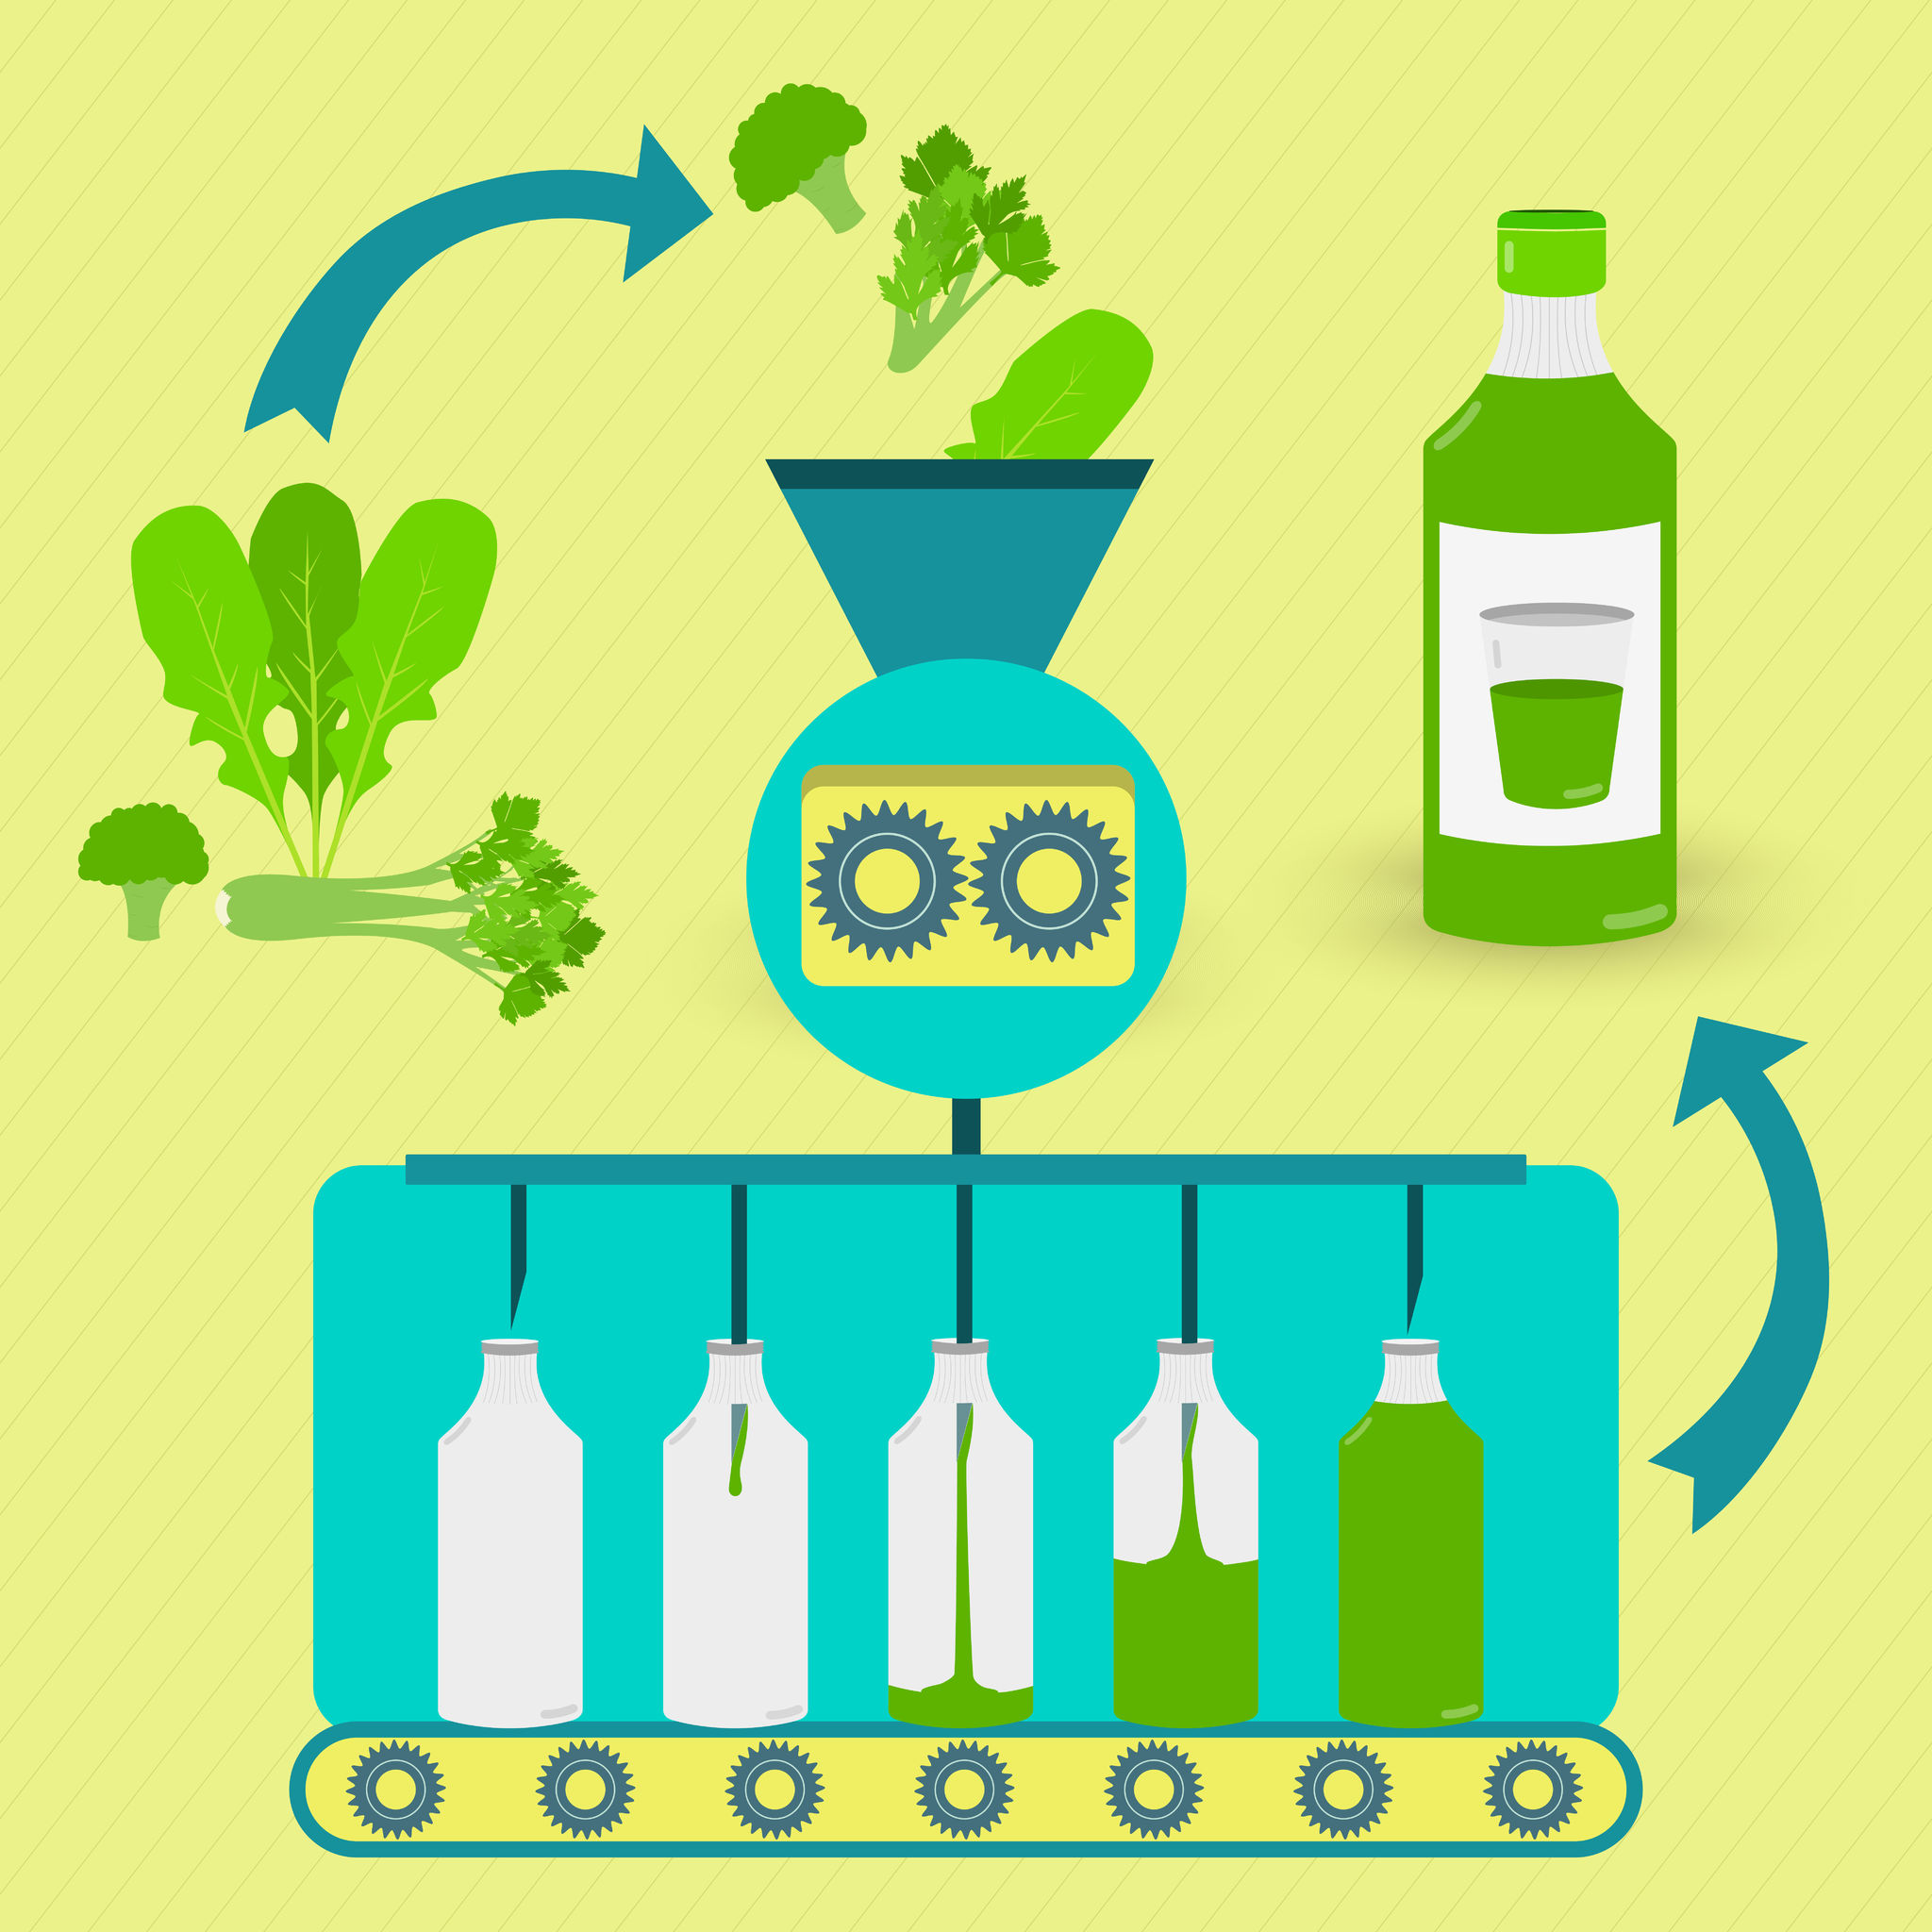 Image shows an idealized machine into which fruits and vegetables are fed and out of which comes a bottle of juice